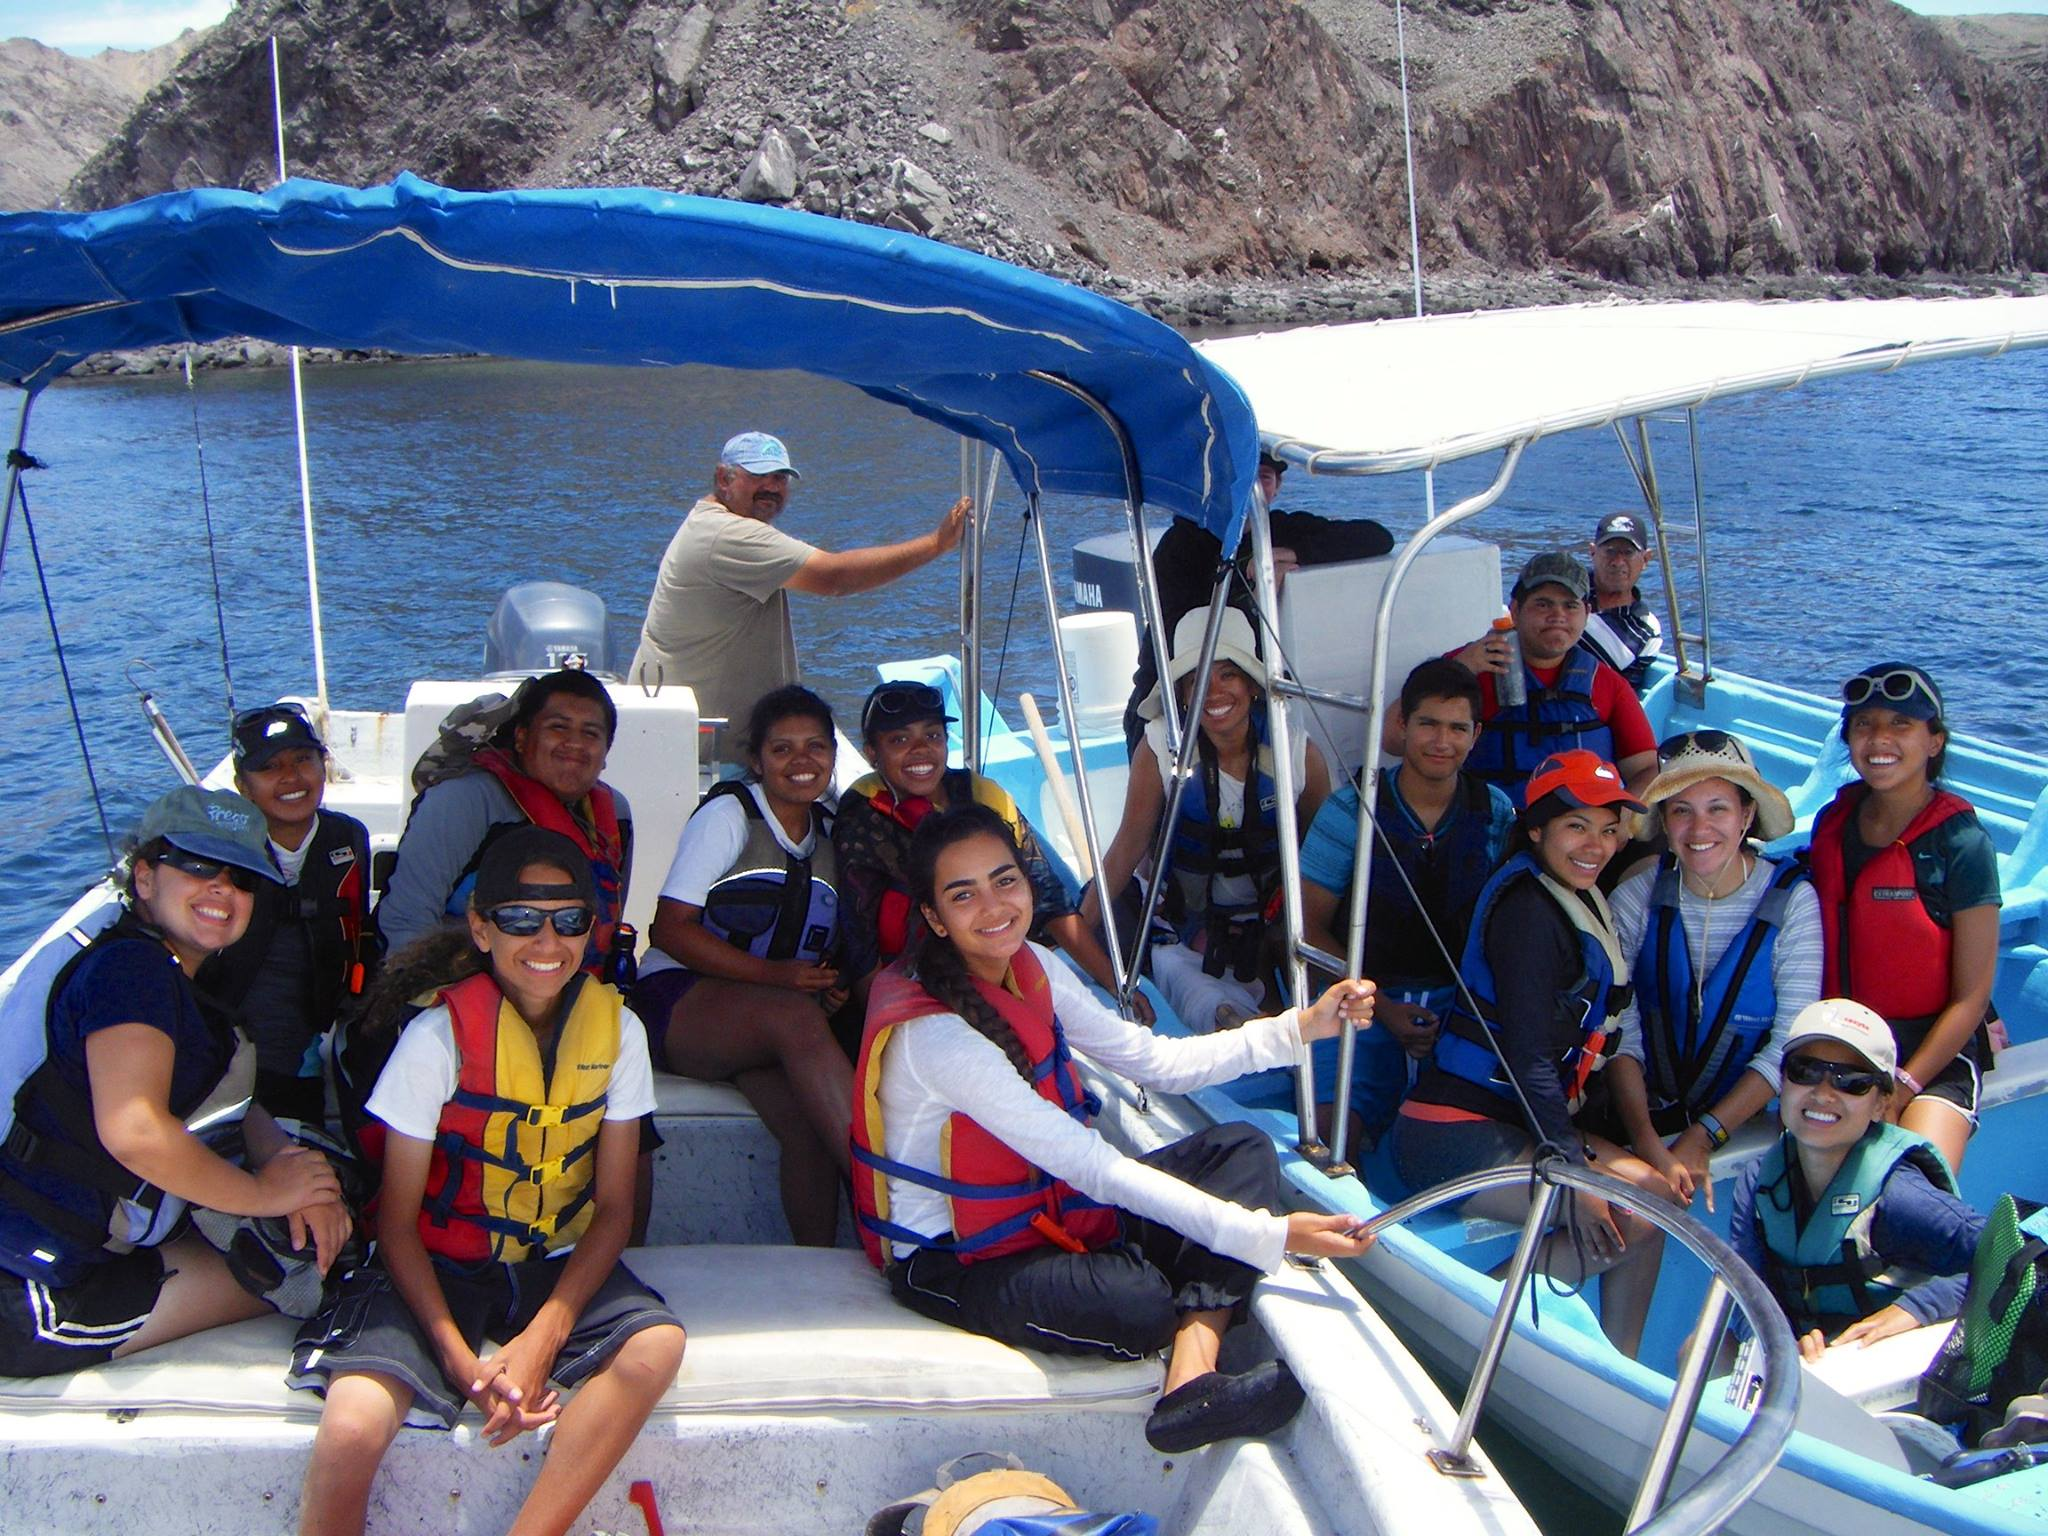 A photo of a group of City Heights youth doing research in Bahia de los Angeles as part of Ocean Discovery's Bahia program.